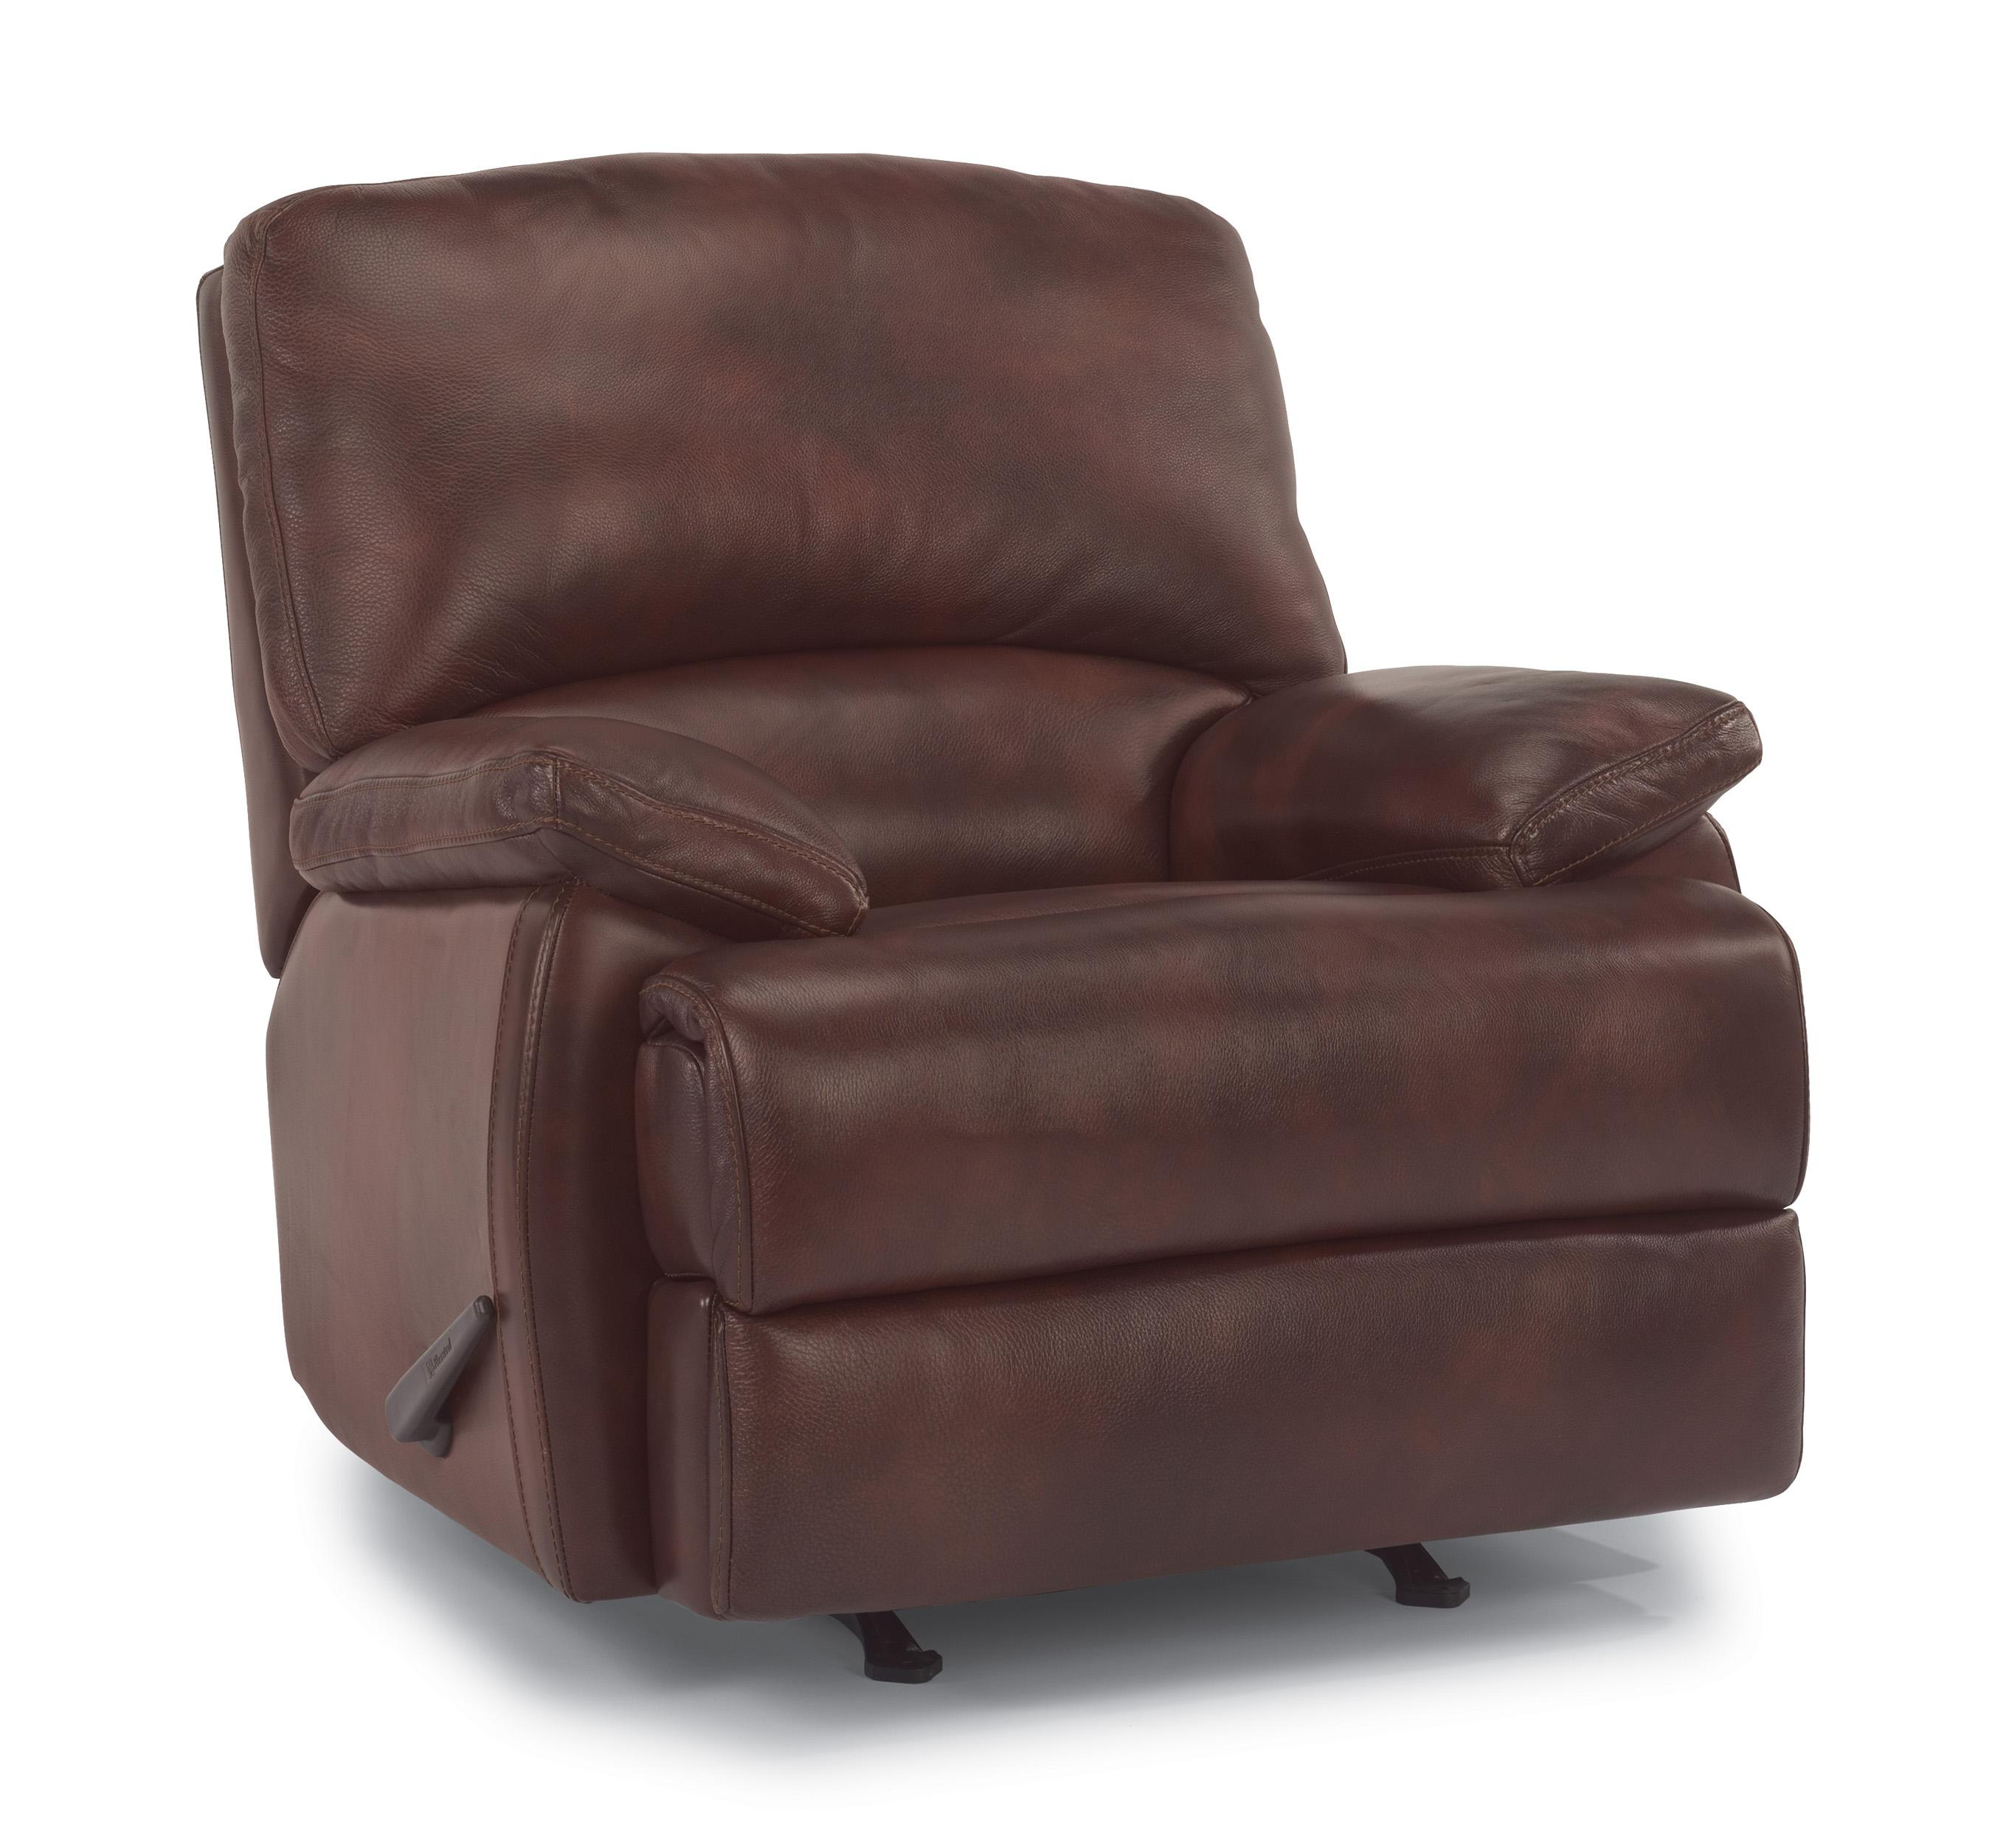 Flexsteel Latitudes - Dylan Rocker Recliner - Item Number: 1127-510-808-72